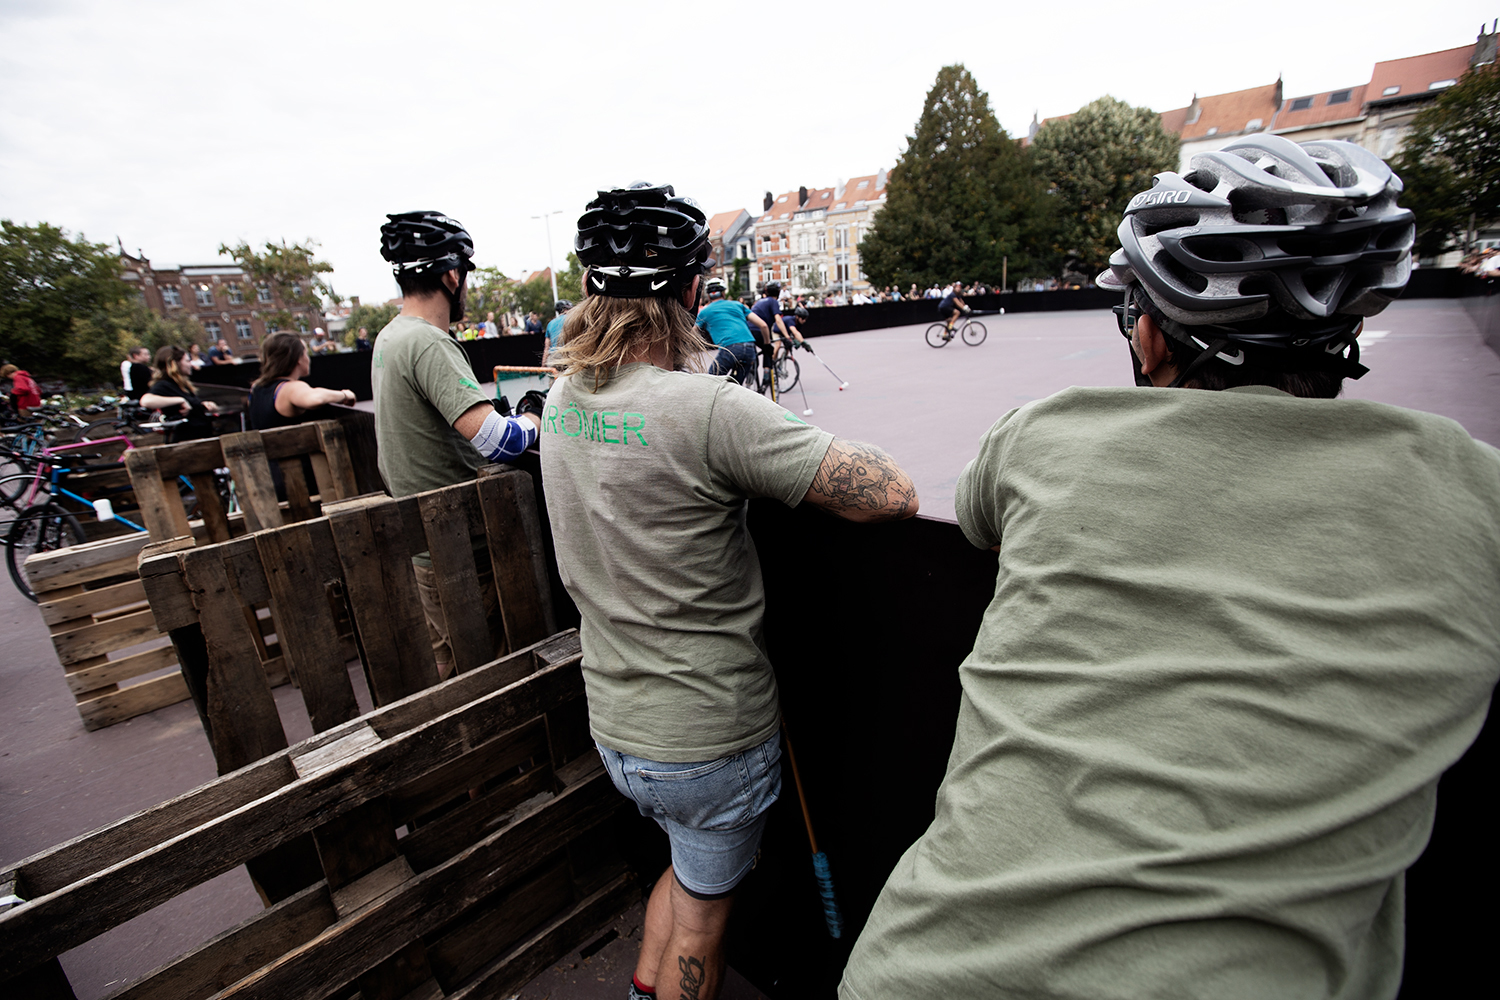 Brussels Bike Polo - Le Grand Royal 8 - 2019 by Laurent Orseau #12